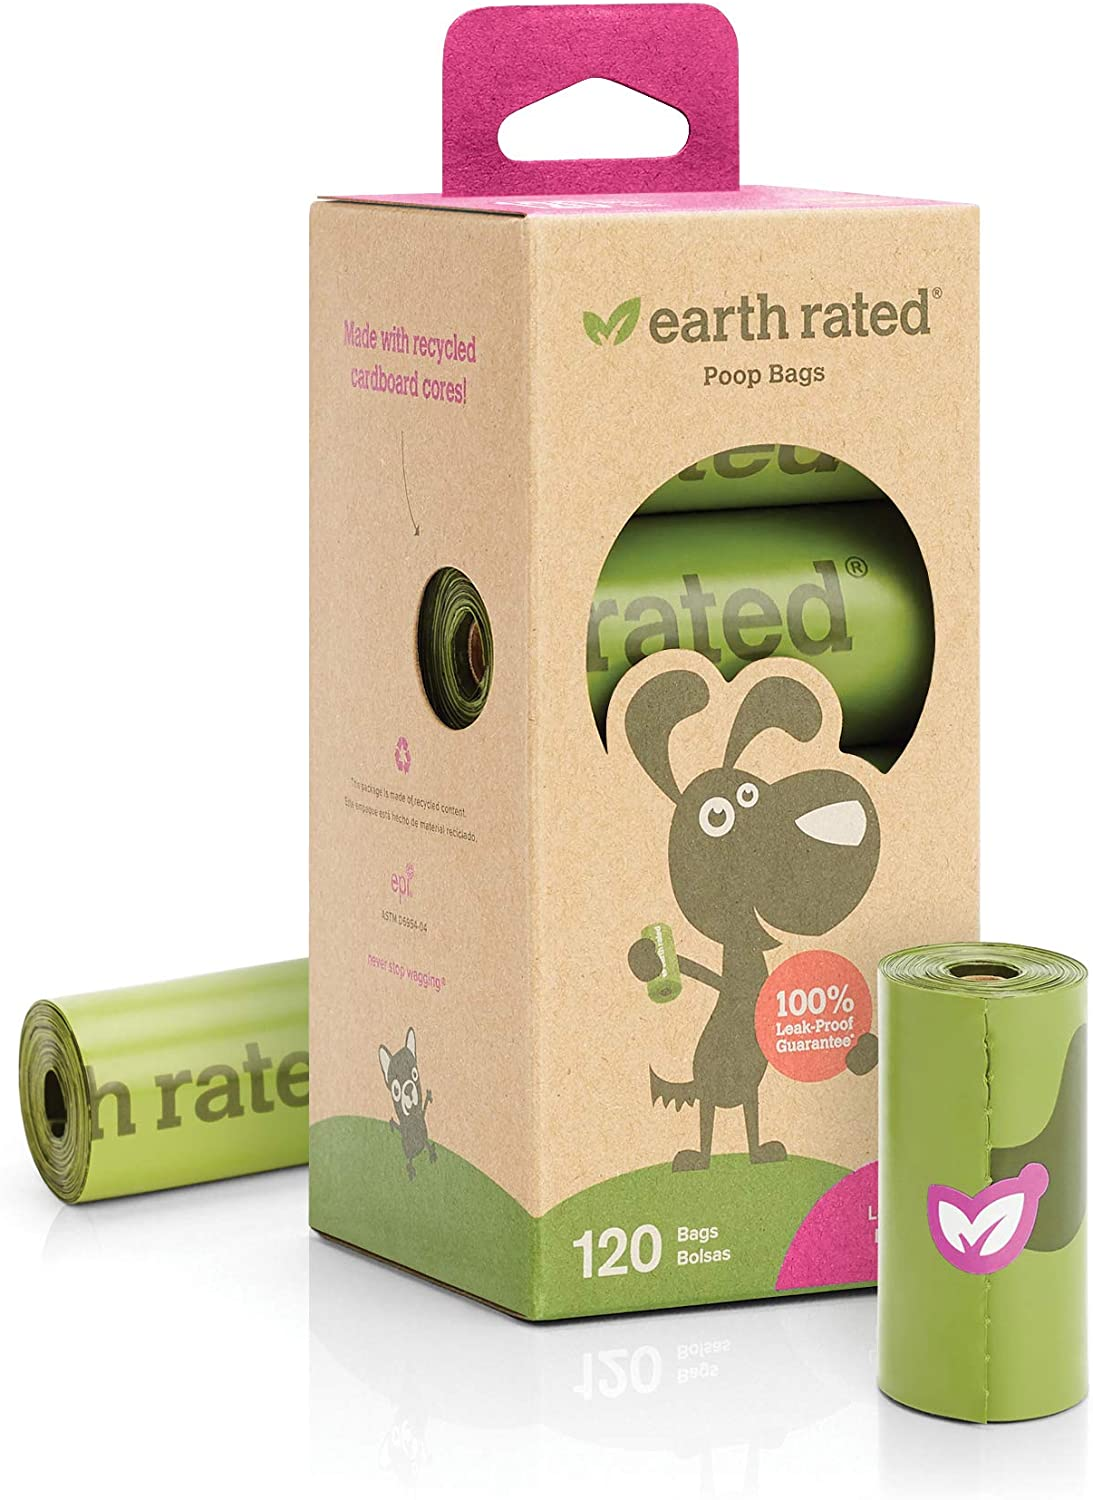 Earth Rated Poop Bag Refill Rolls